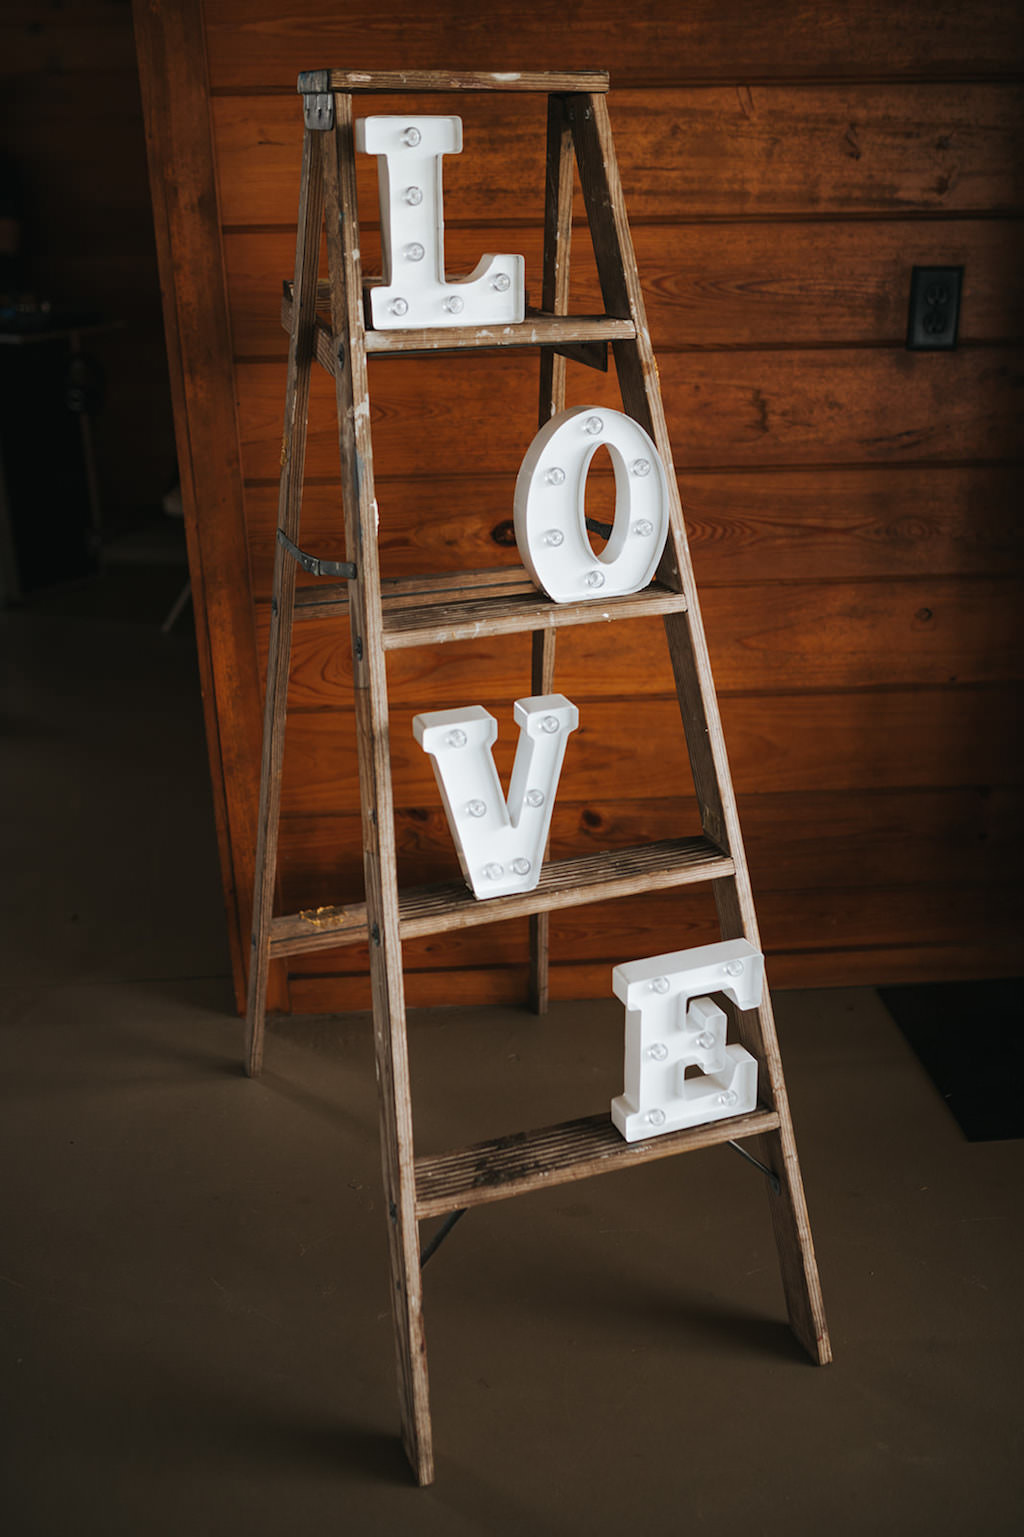 Rustic Chic Wedding Reception Decor, Wooden Ladder with White Marquee LOVE Letters   Wedding Planner Kelly Kennedy Weddings and Events